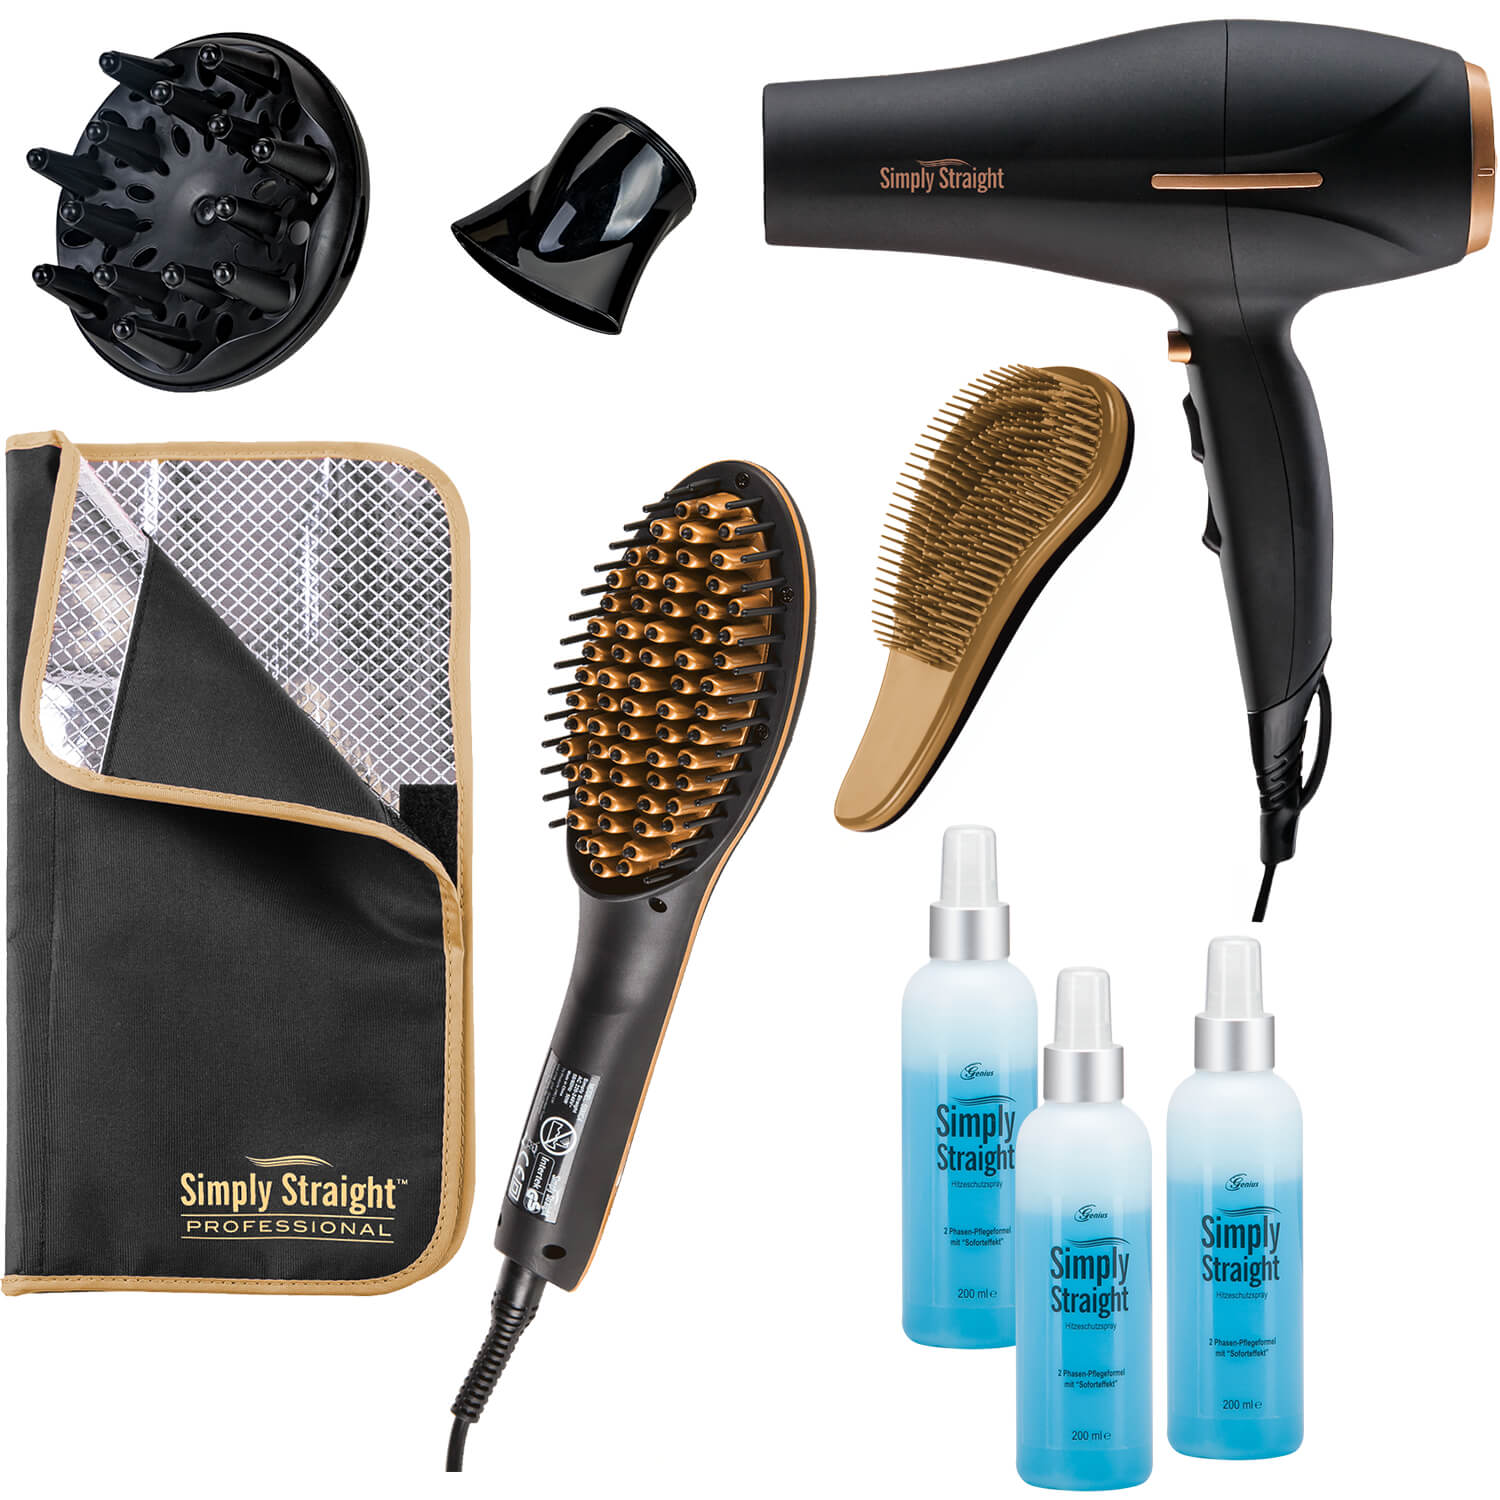 Genius Simply Straight Professional Deluxe, Set...